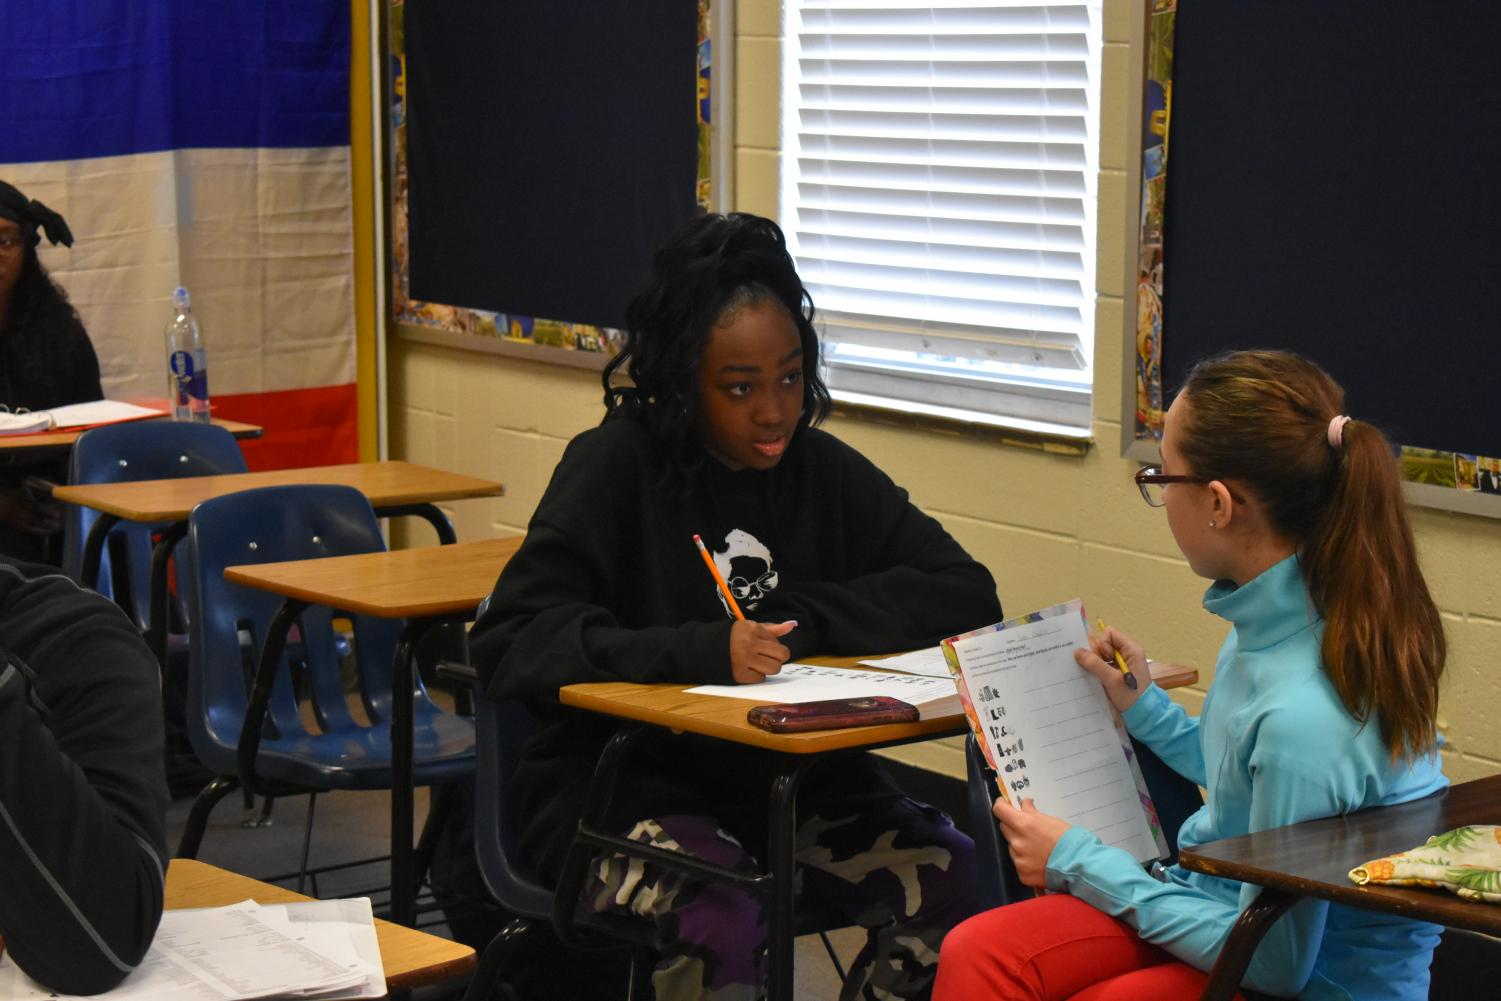 Anaya Cheyenne participates in an activity for Ms. Cotton's 3rd period Spanish class. Despite living the life of a singer, Davis still must meet all the requirements demanded of a NC sophomore. When prompted on how she balances school with work, she noted the exceedingly demanding schedule she follows, though she still manages to keep up.